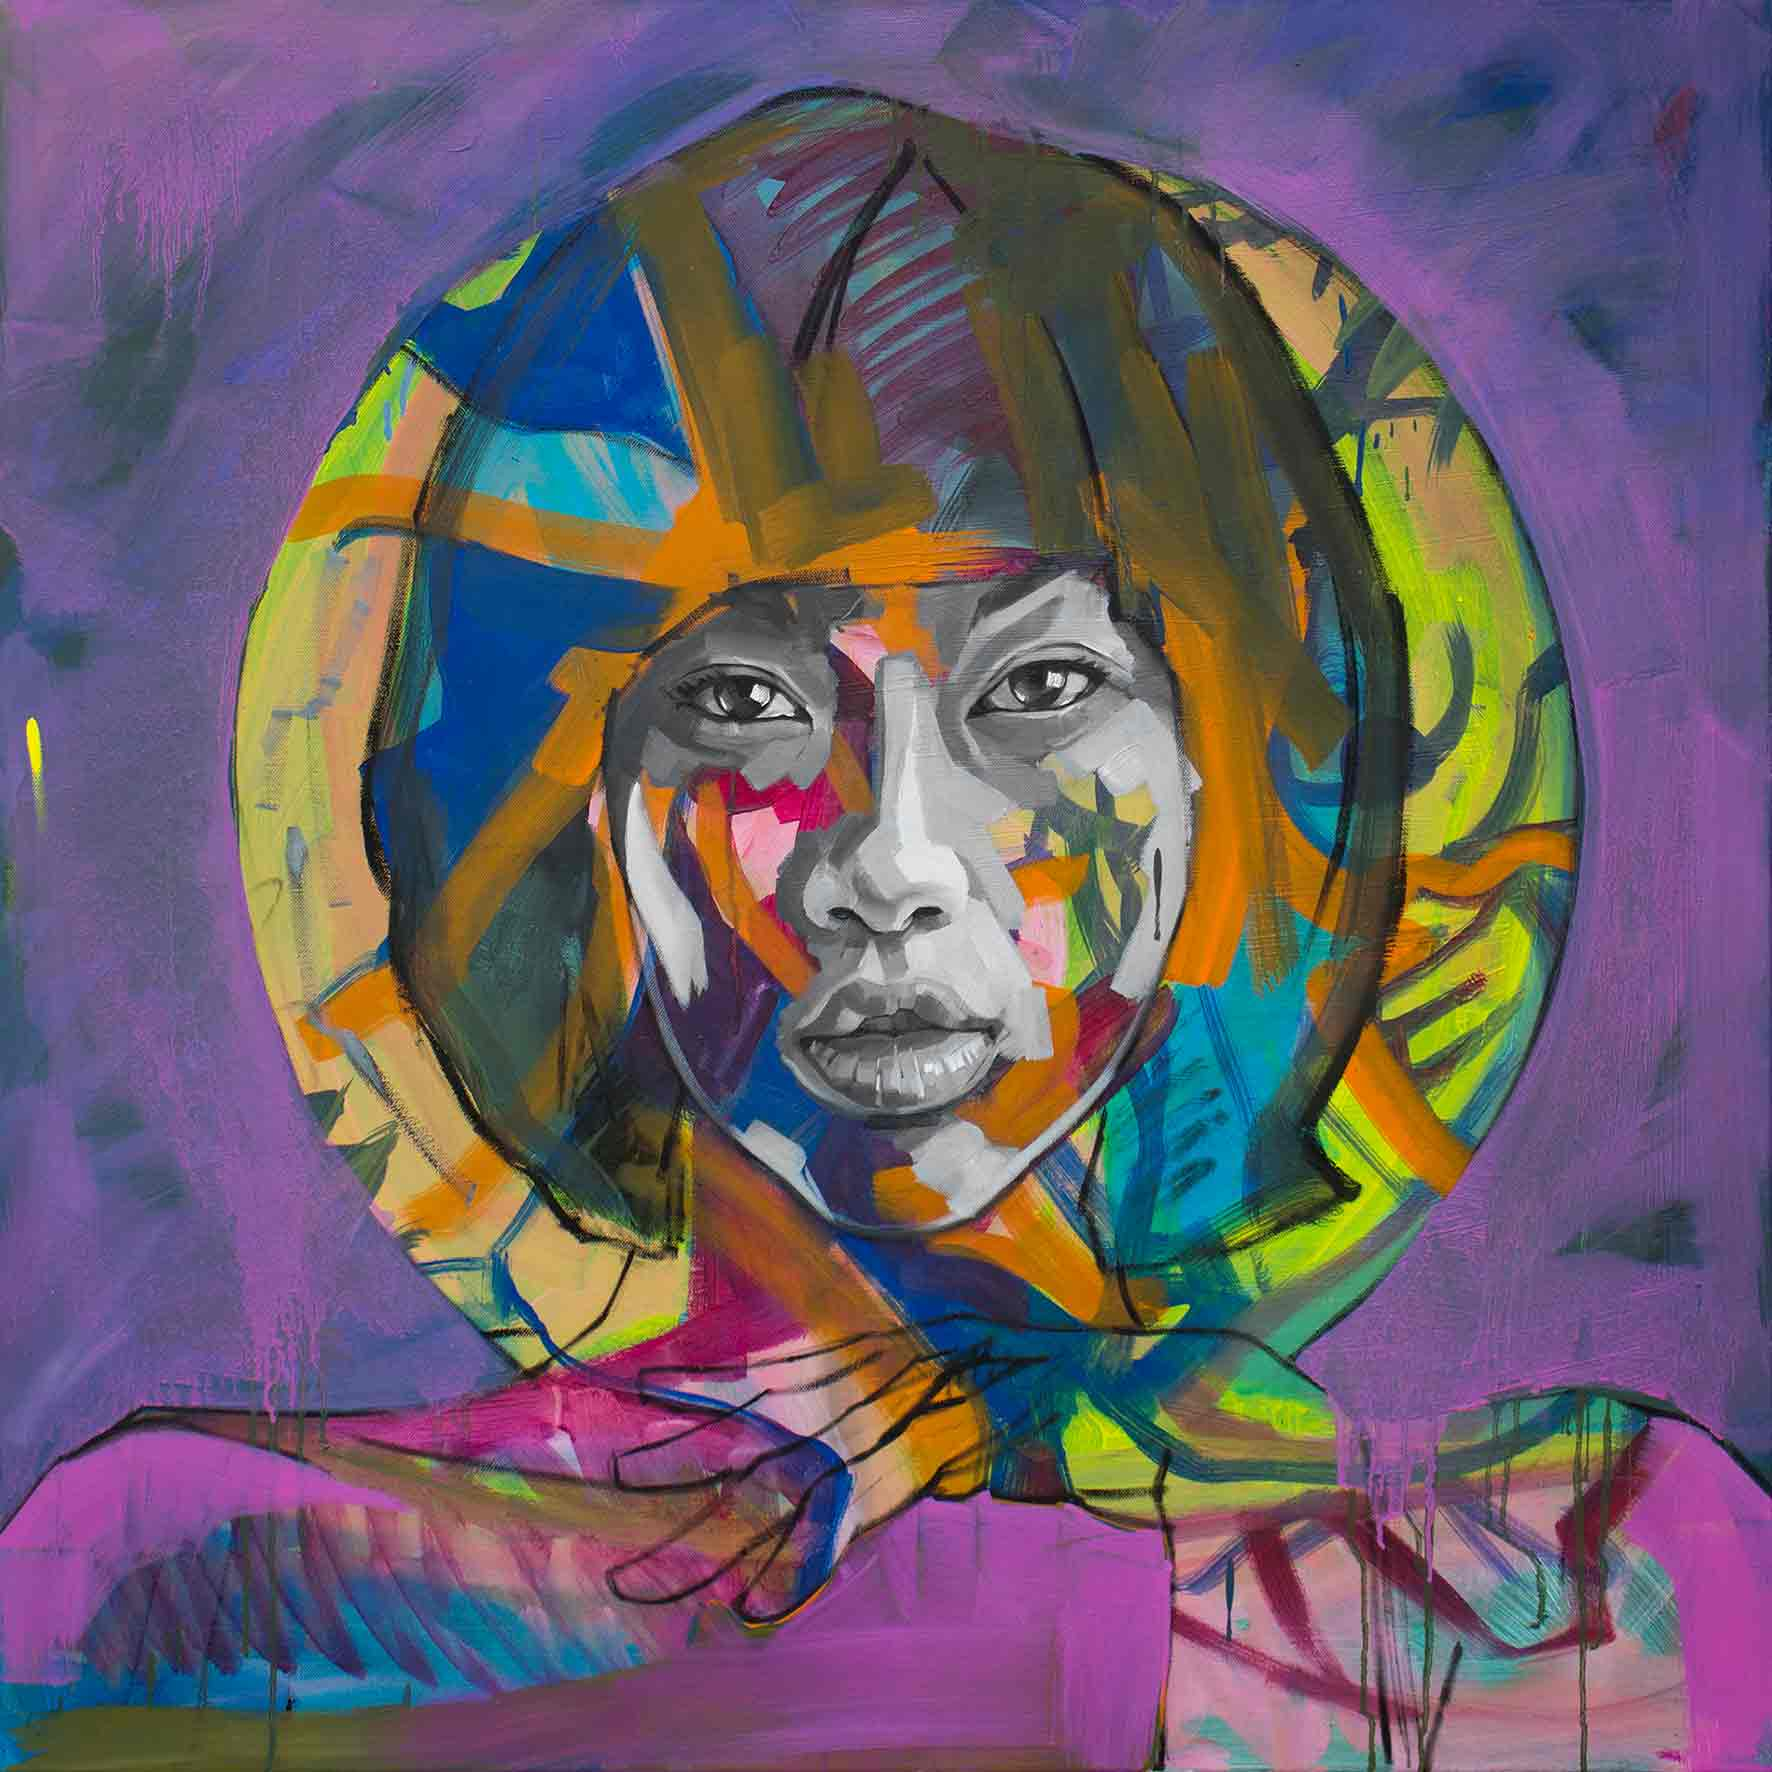 Angie 02, Oil on Canvas 36×36 Inches